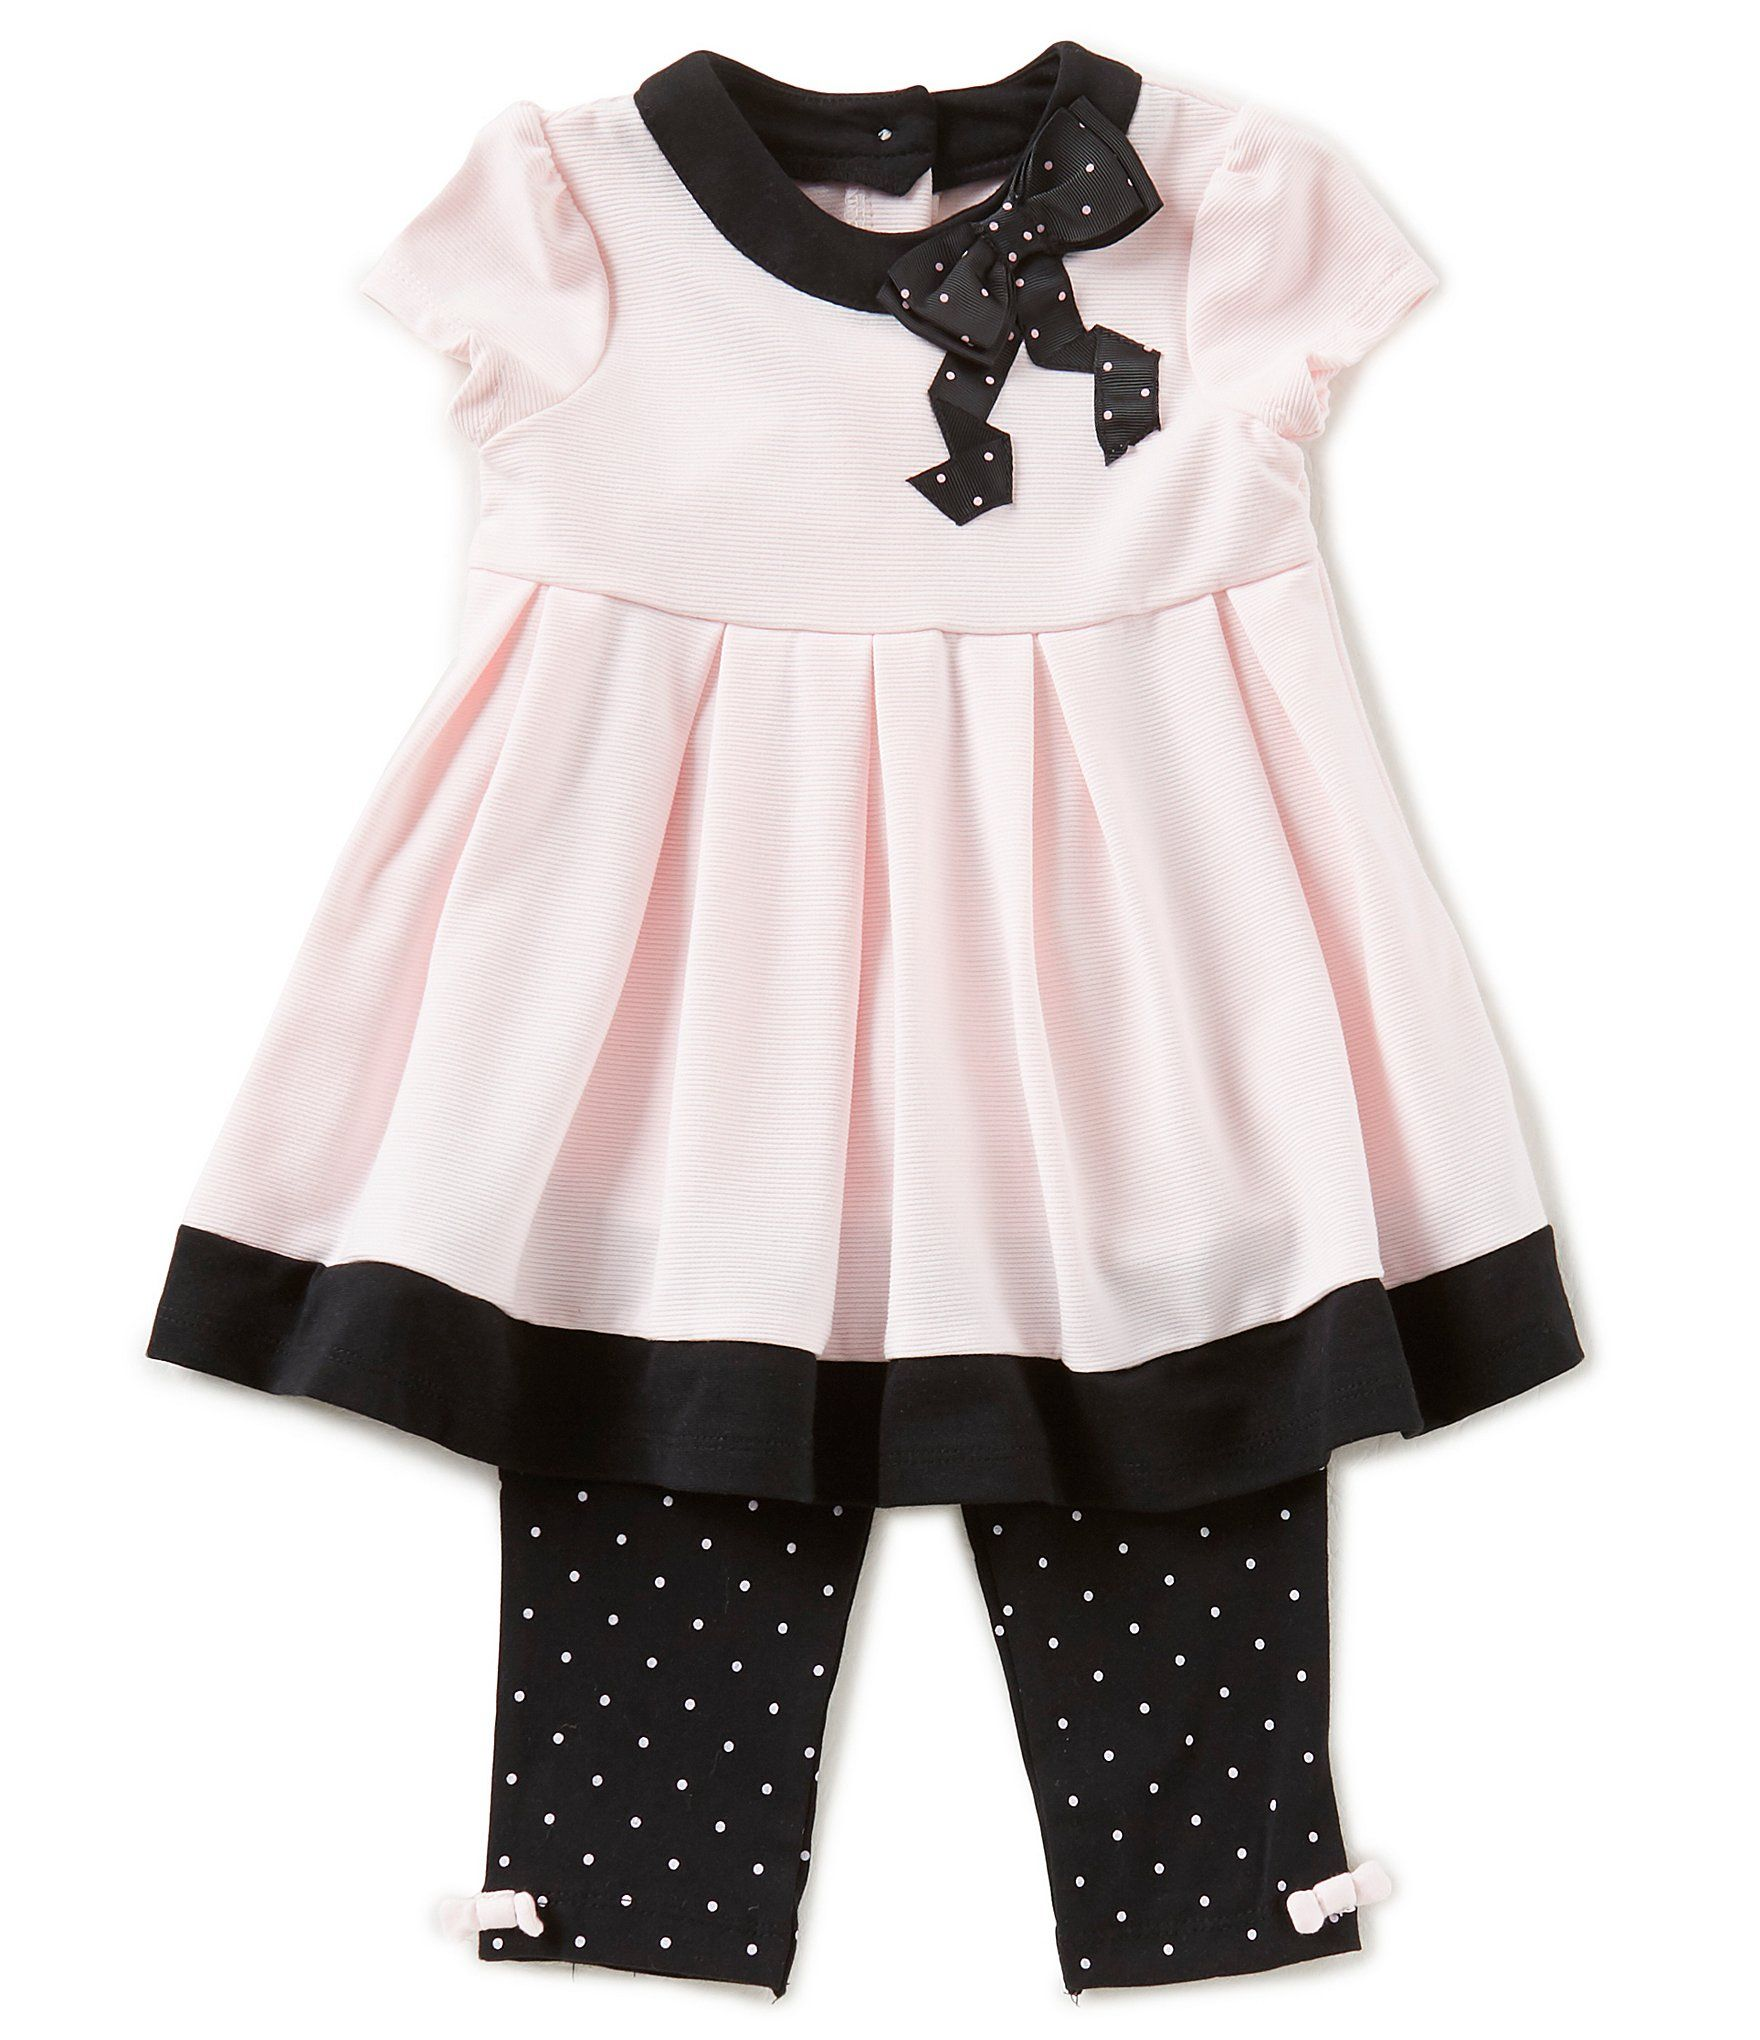 Little Me Baby Girls 12 24 Months Cap Sleeve Pleated Dress & Dotted